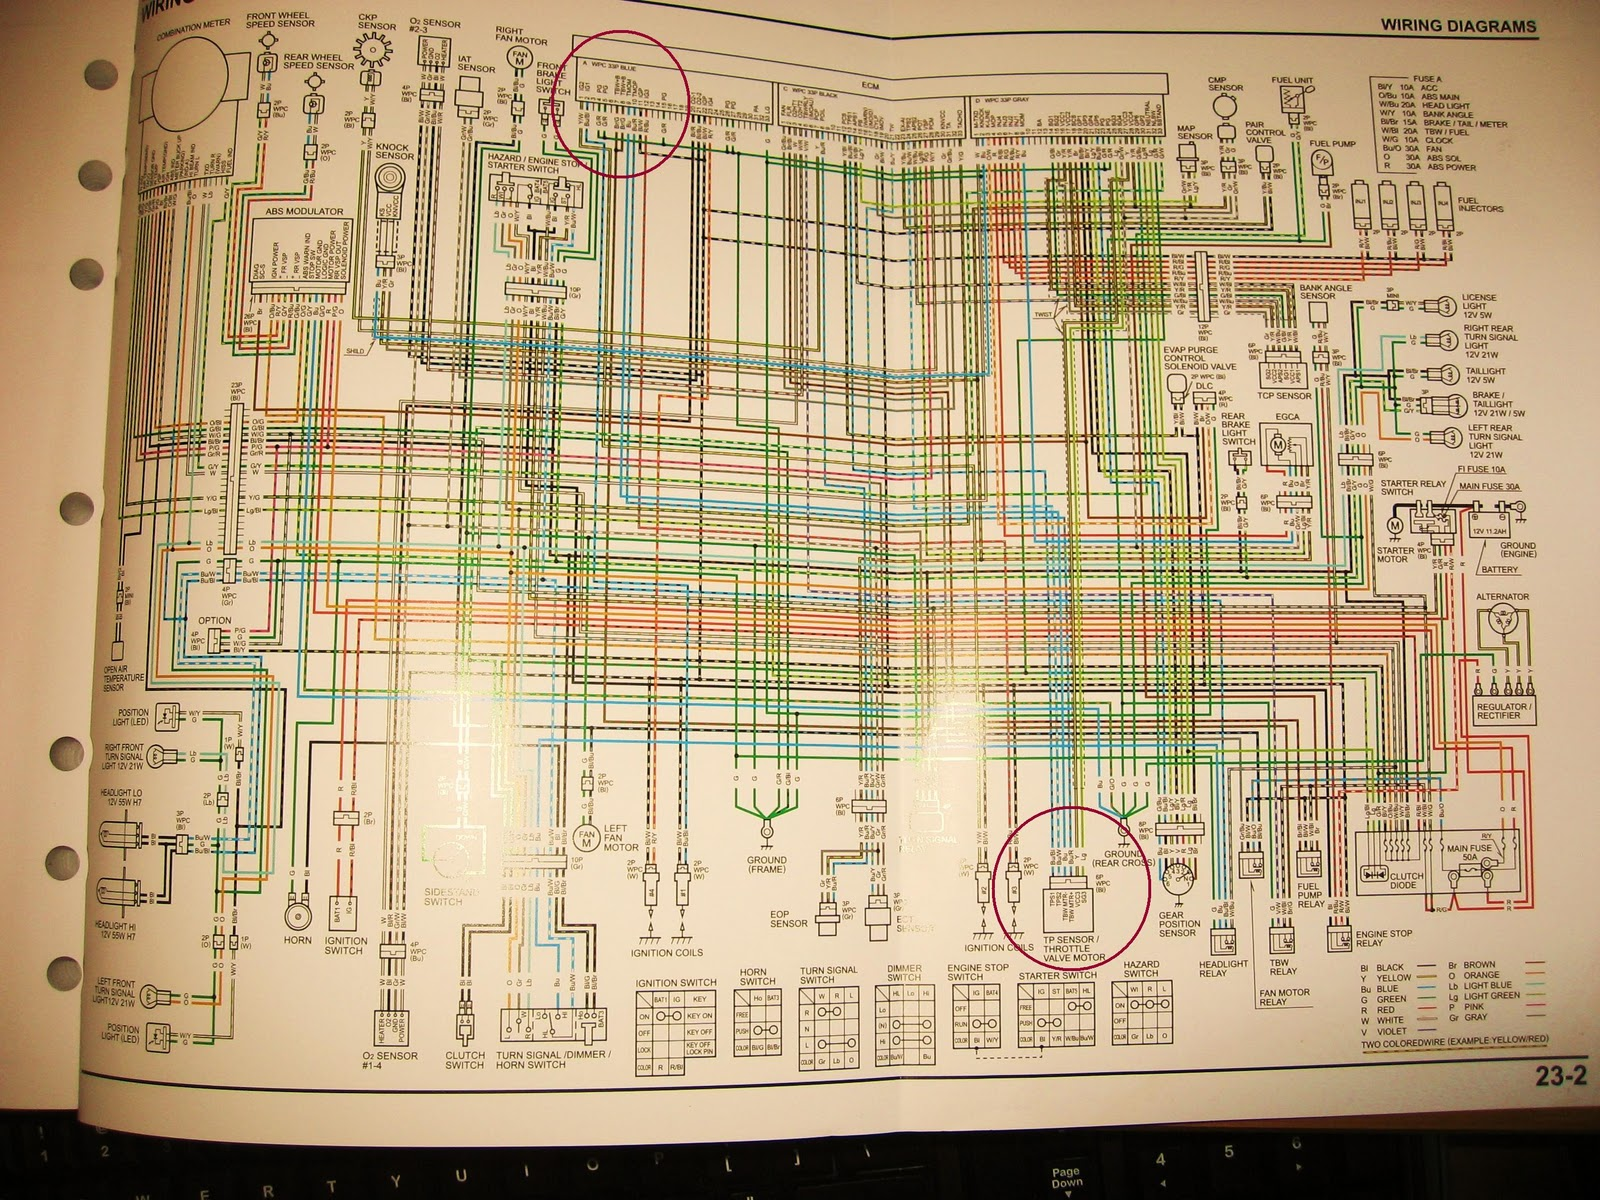 Honda Vfr Wiring Diagram Library Cb750 Furthermore Volt Meter With Shunt